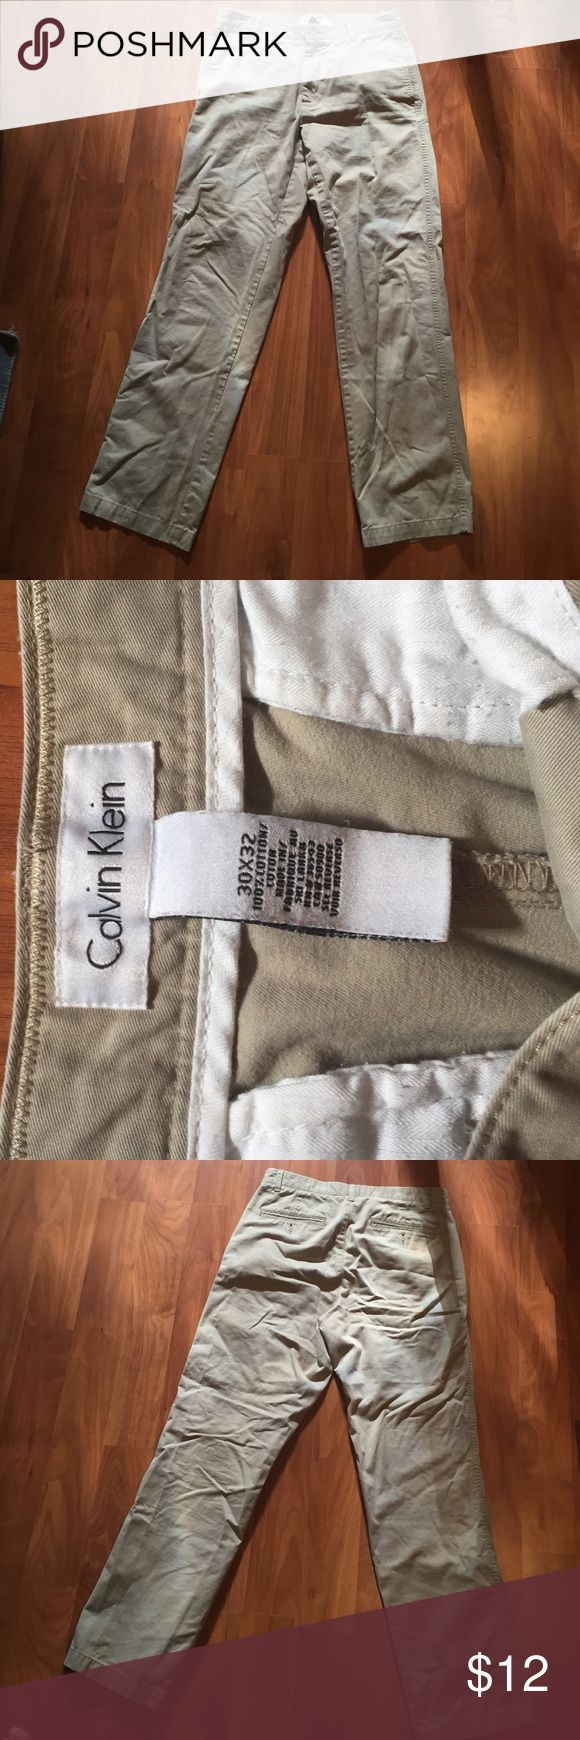 MUST GO! Calvin Klein Men's Khaki Pants These are in good shape. No stains or flaws just need to be ironed. Size 30 32. Make offers! Calvin Klein Pants Chinos & Khakis